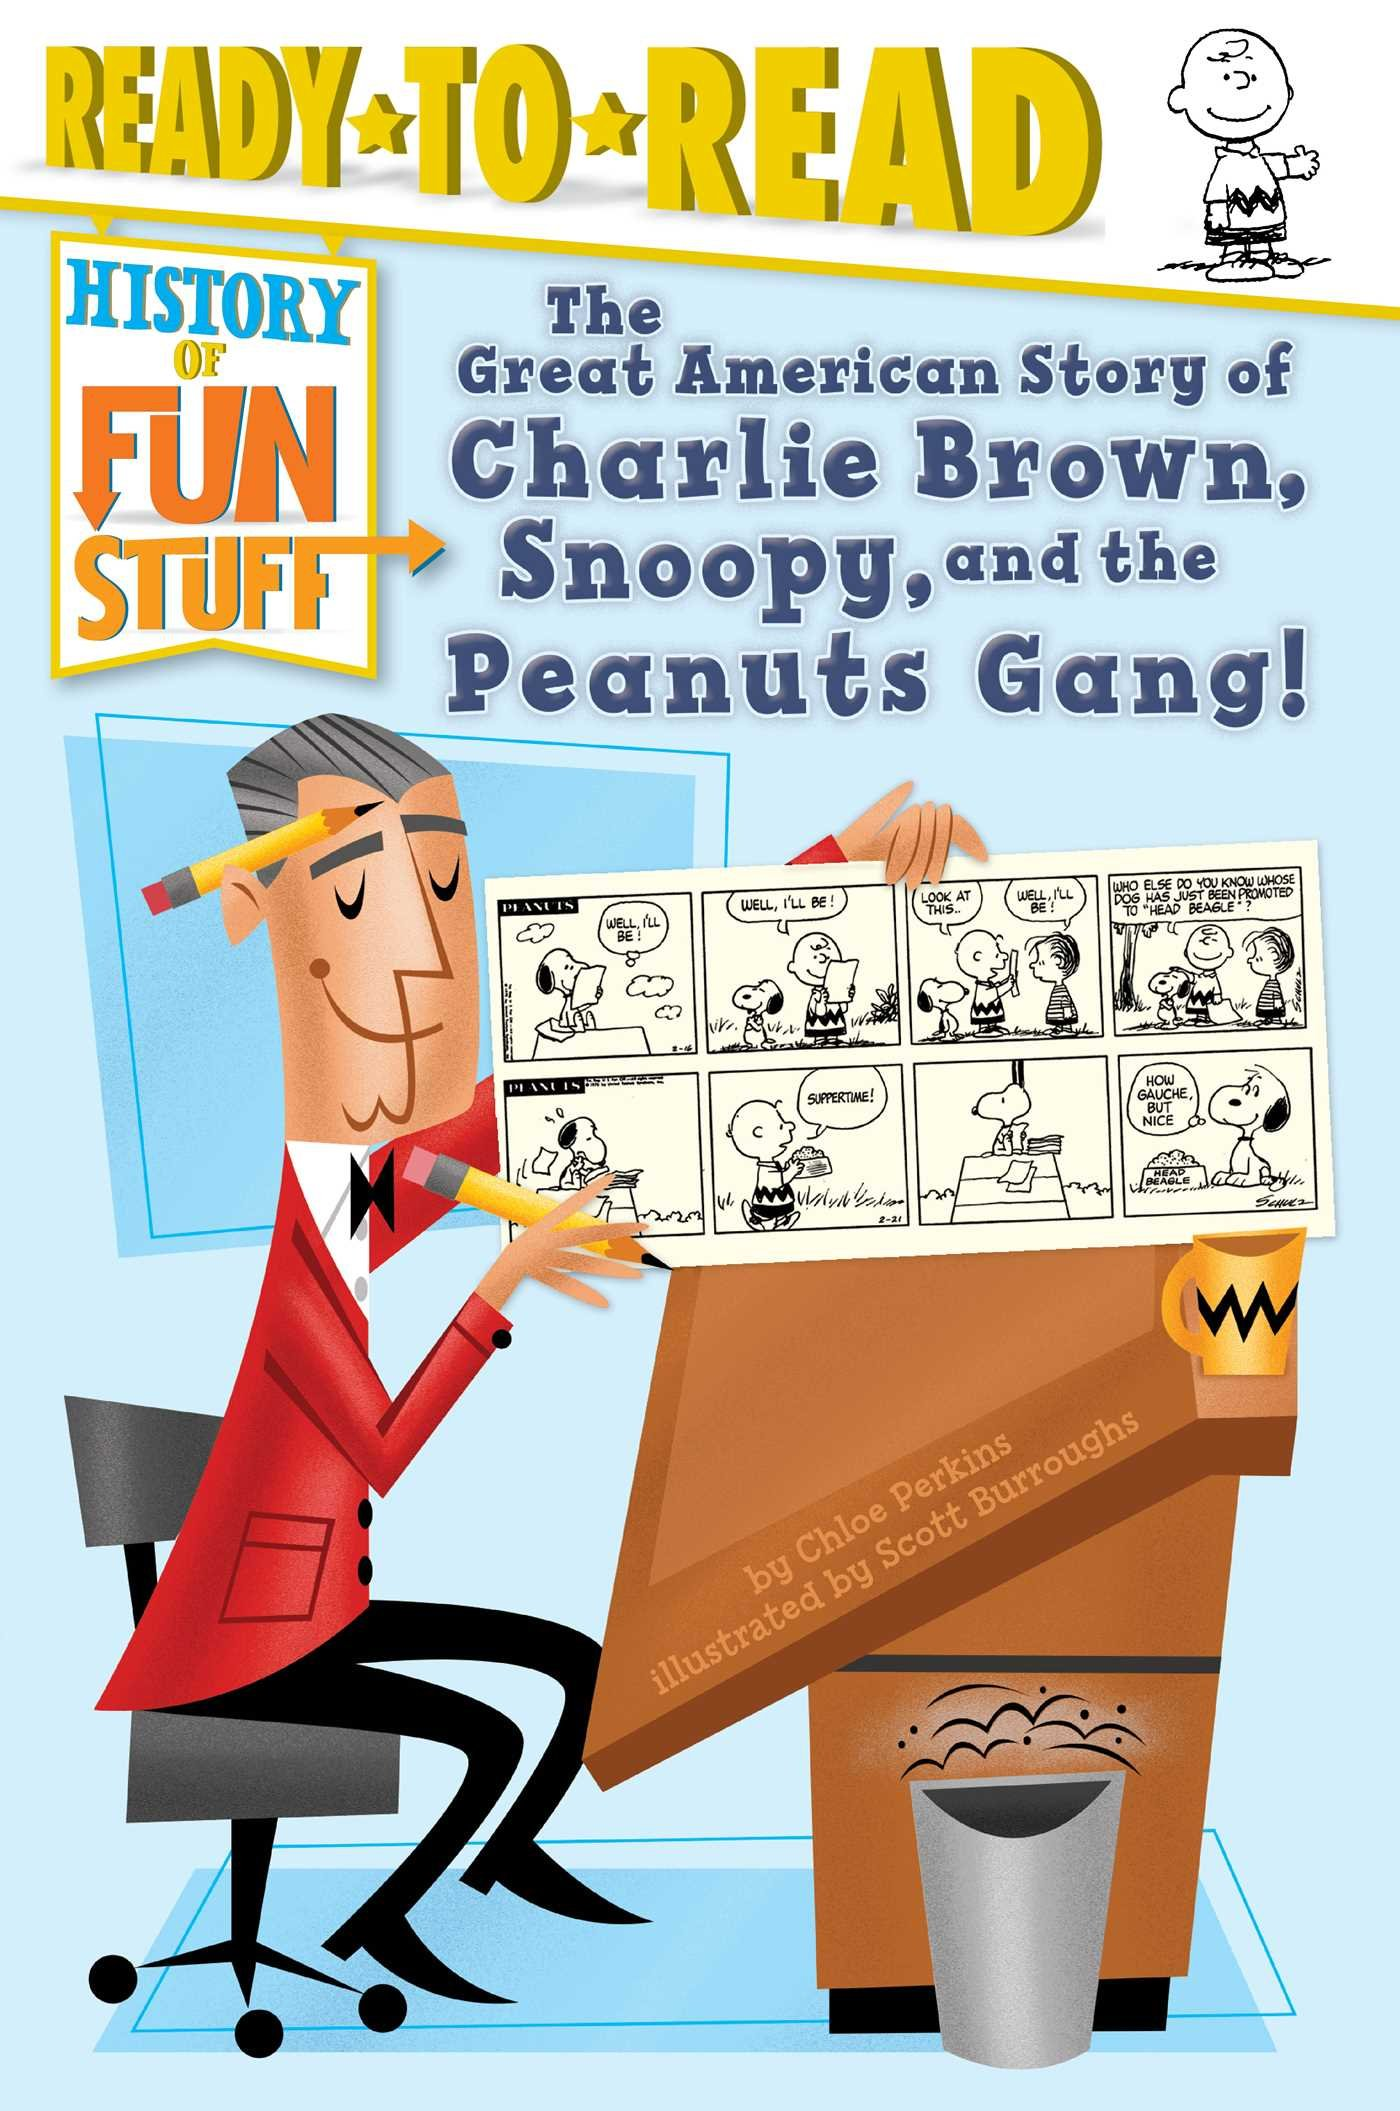 The Great American Story of Charlie Brown, Snoopy, and the Peanuts Gang! (History of Fun Stuff)